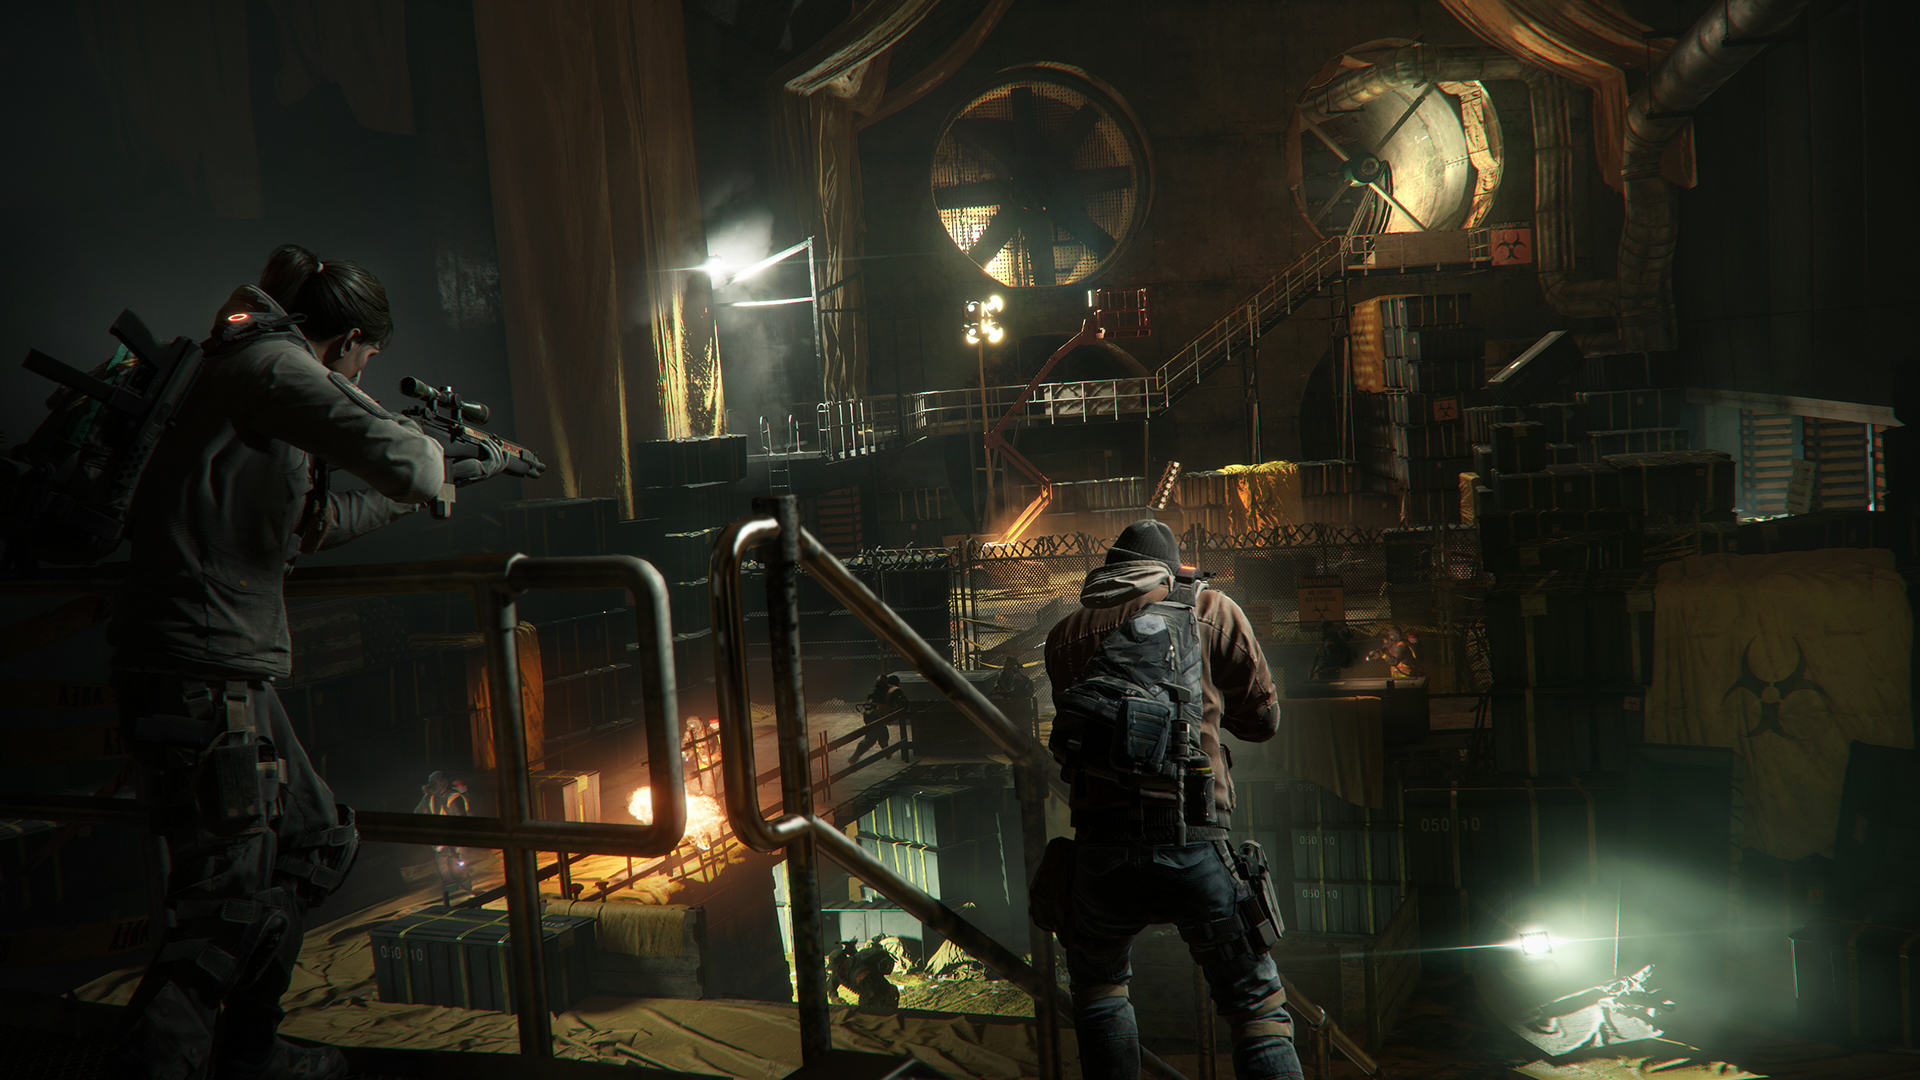 New Mission Teased In Trailer For The Division Open Beta The Division